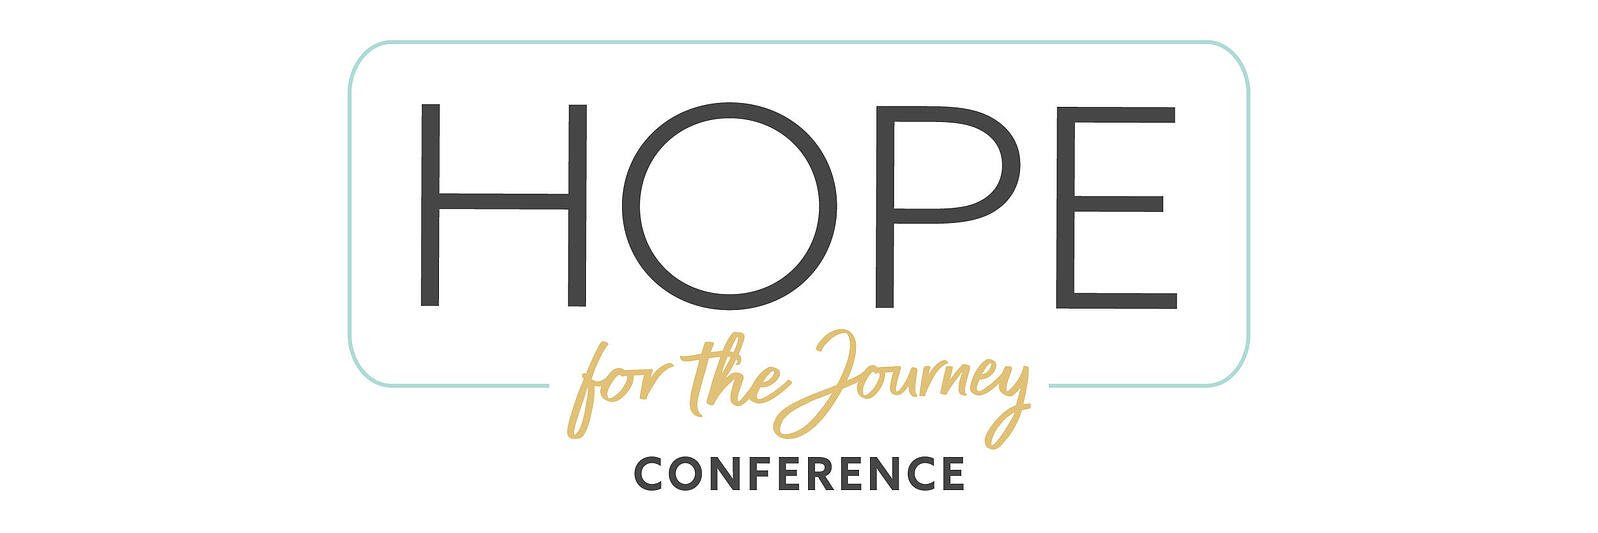 Show Hope for the Journey logo